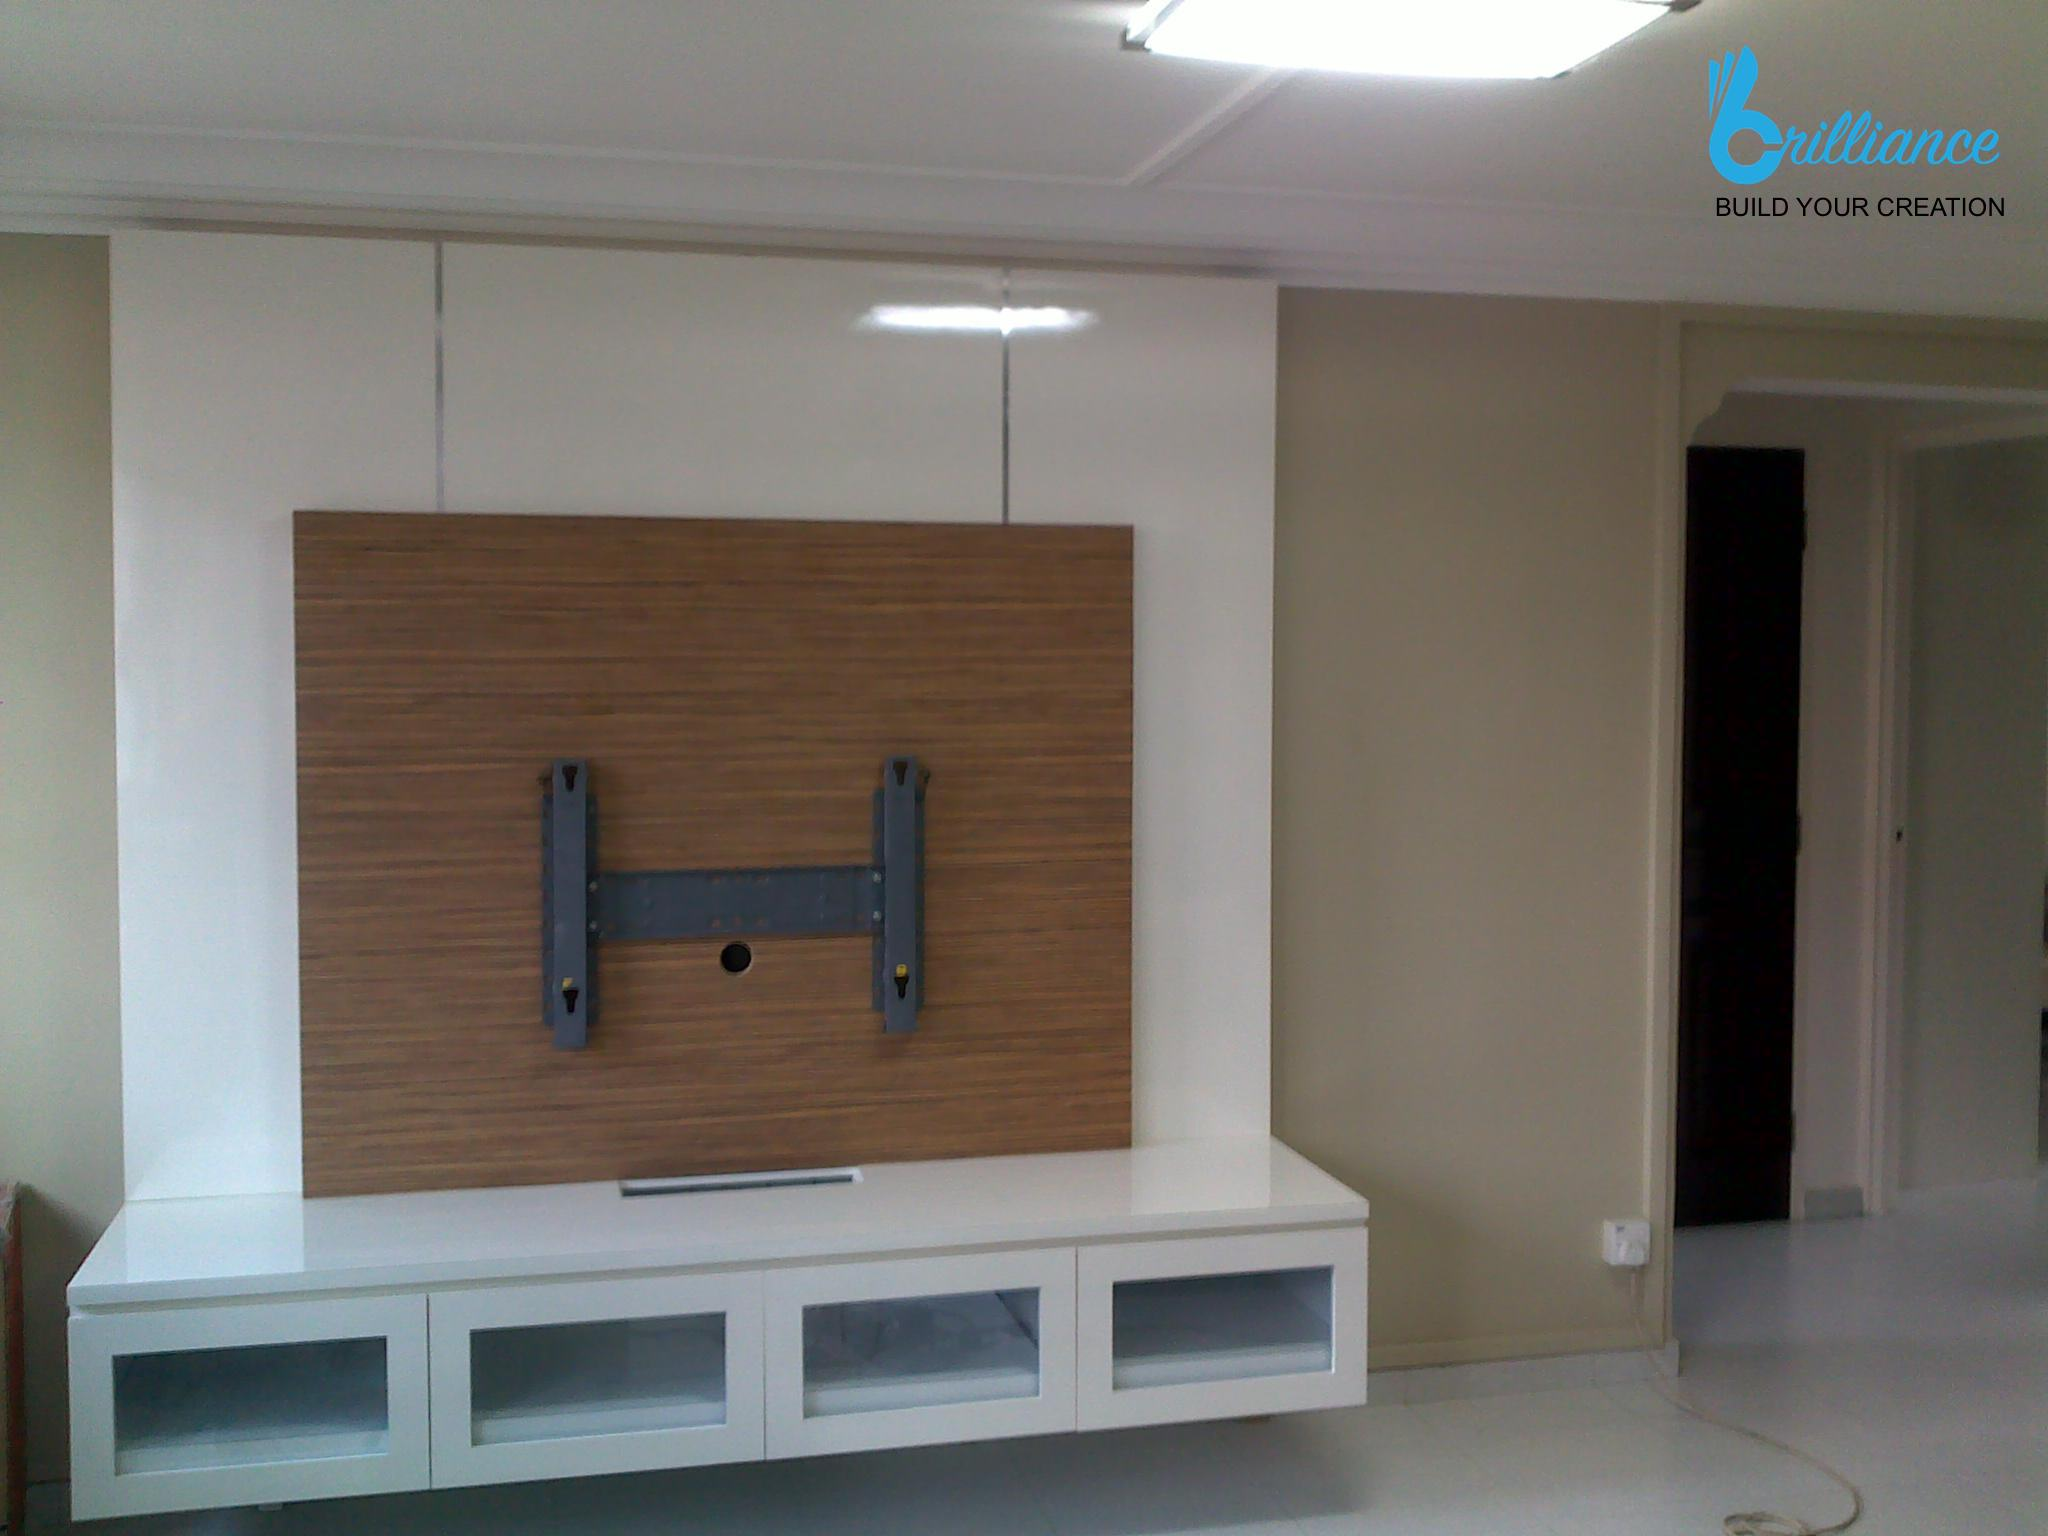 HDB renovation Ubi Ave 1 by Brilliance - TV console